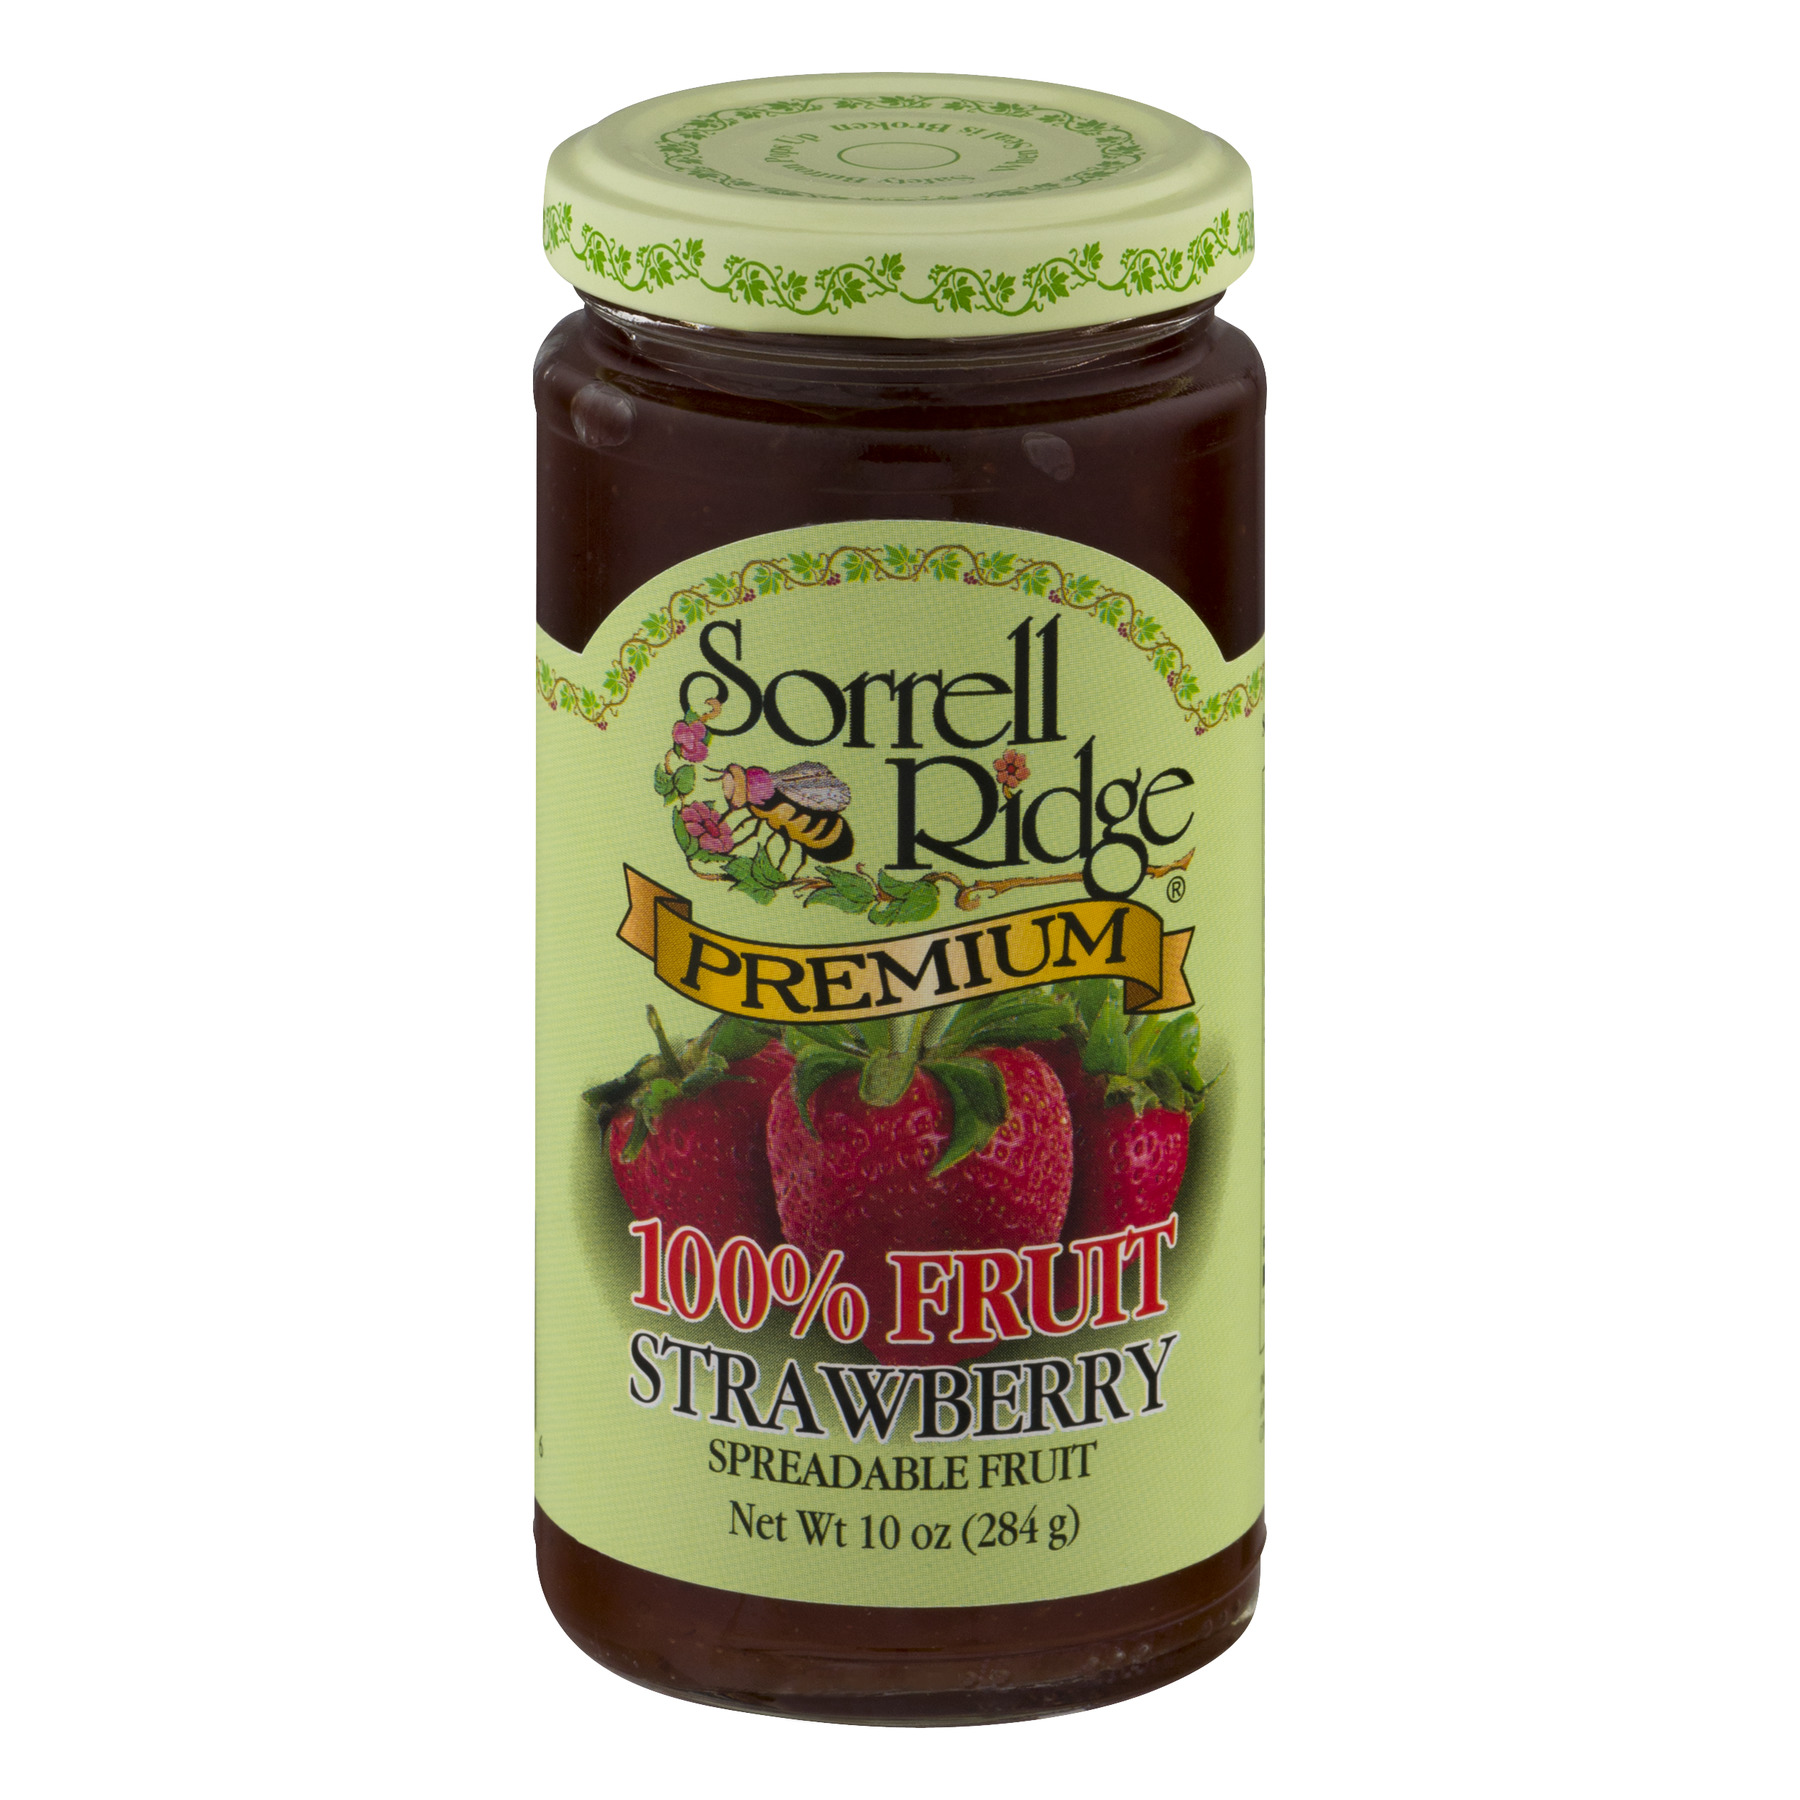 Sorrell Ridge Premium 100% Fruit Strawberry Spreadable Fruit, 10.0 OZ